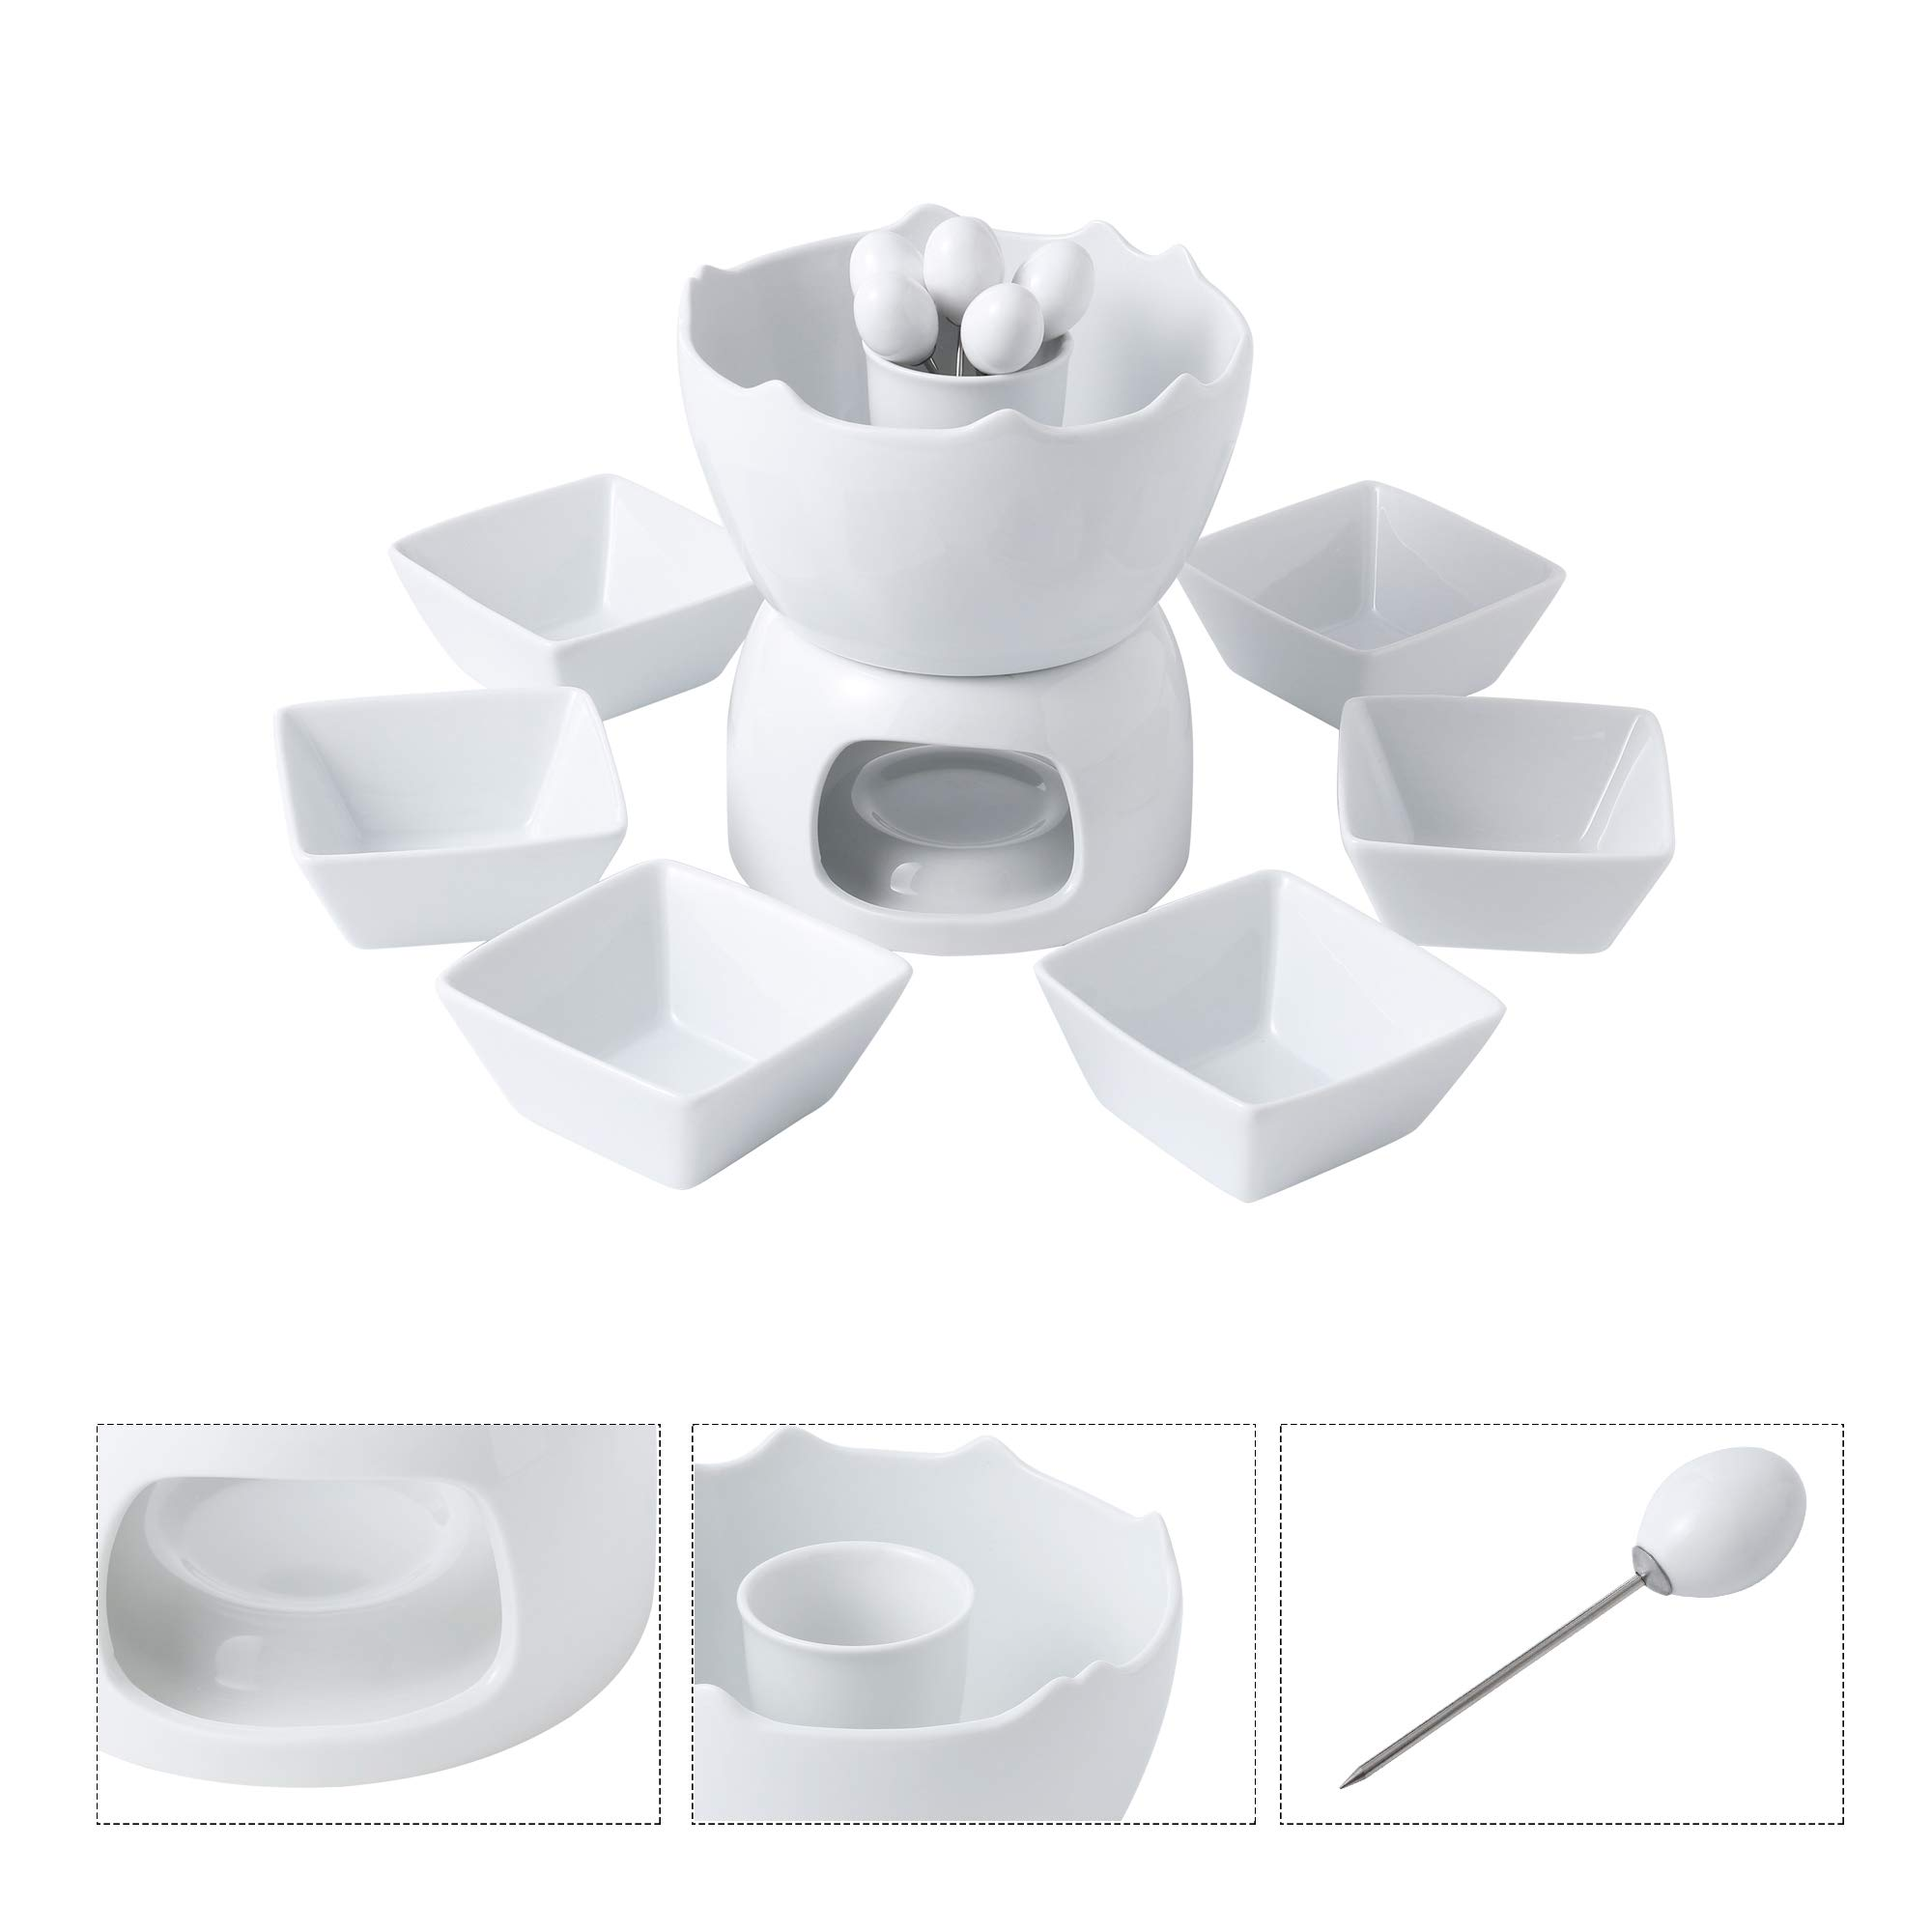 Malacasa Fondue Pot Set Two-layer Porcelain Tealight Chocolate Fondue with Dipping Bowls and Forks for 6, Cheese Fondue or Butter Fondue Set, White by Malacasa (Image #2)